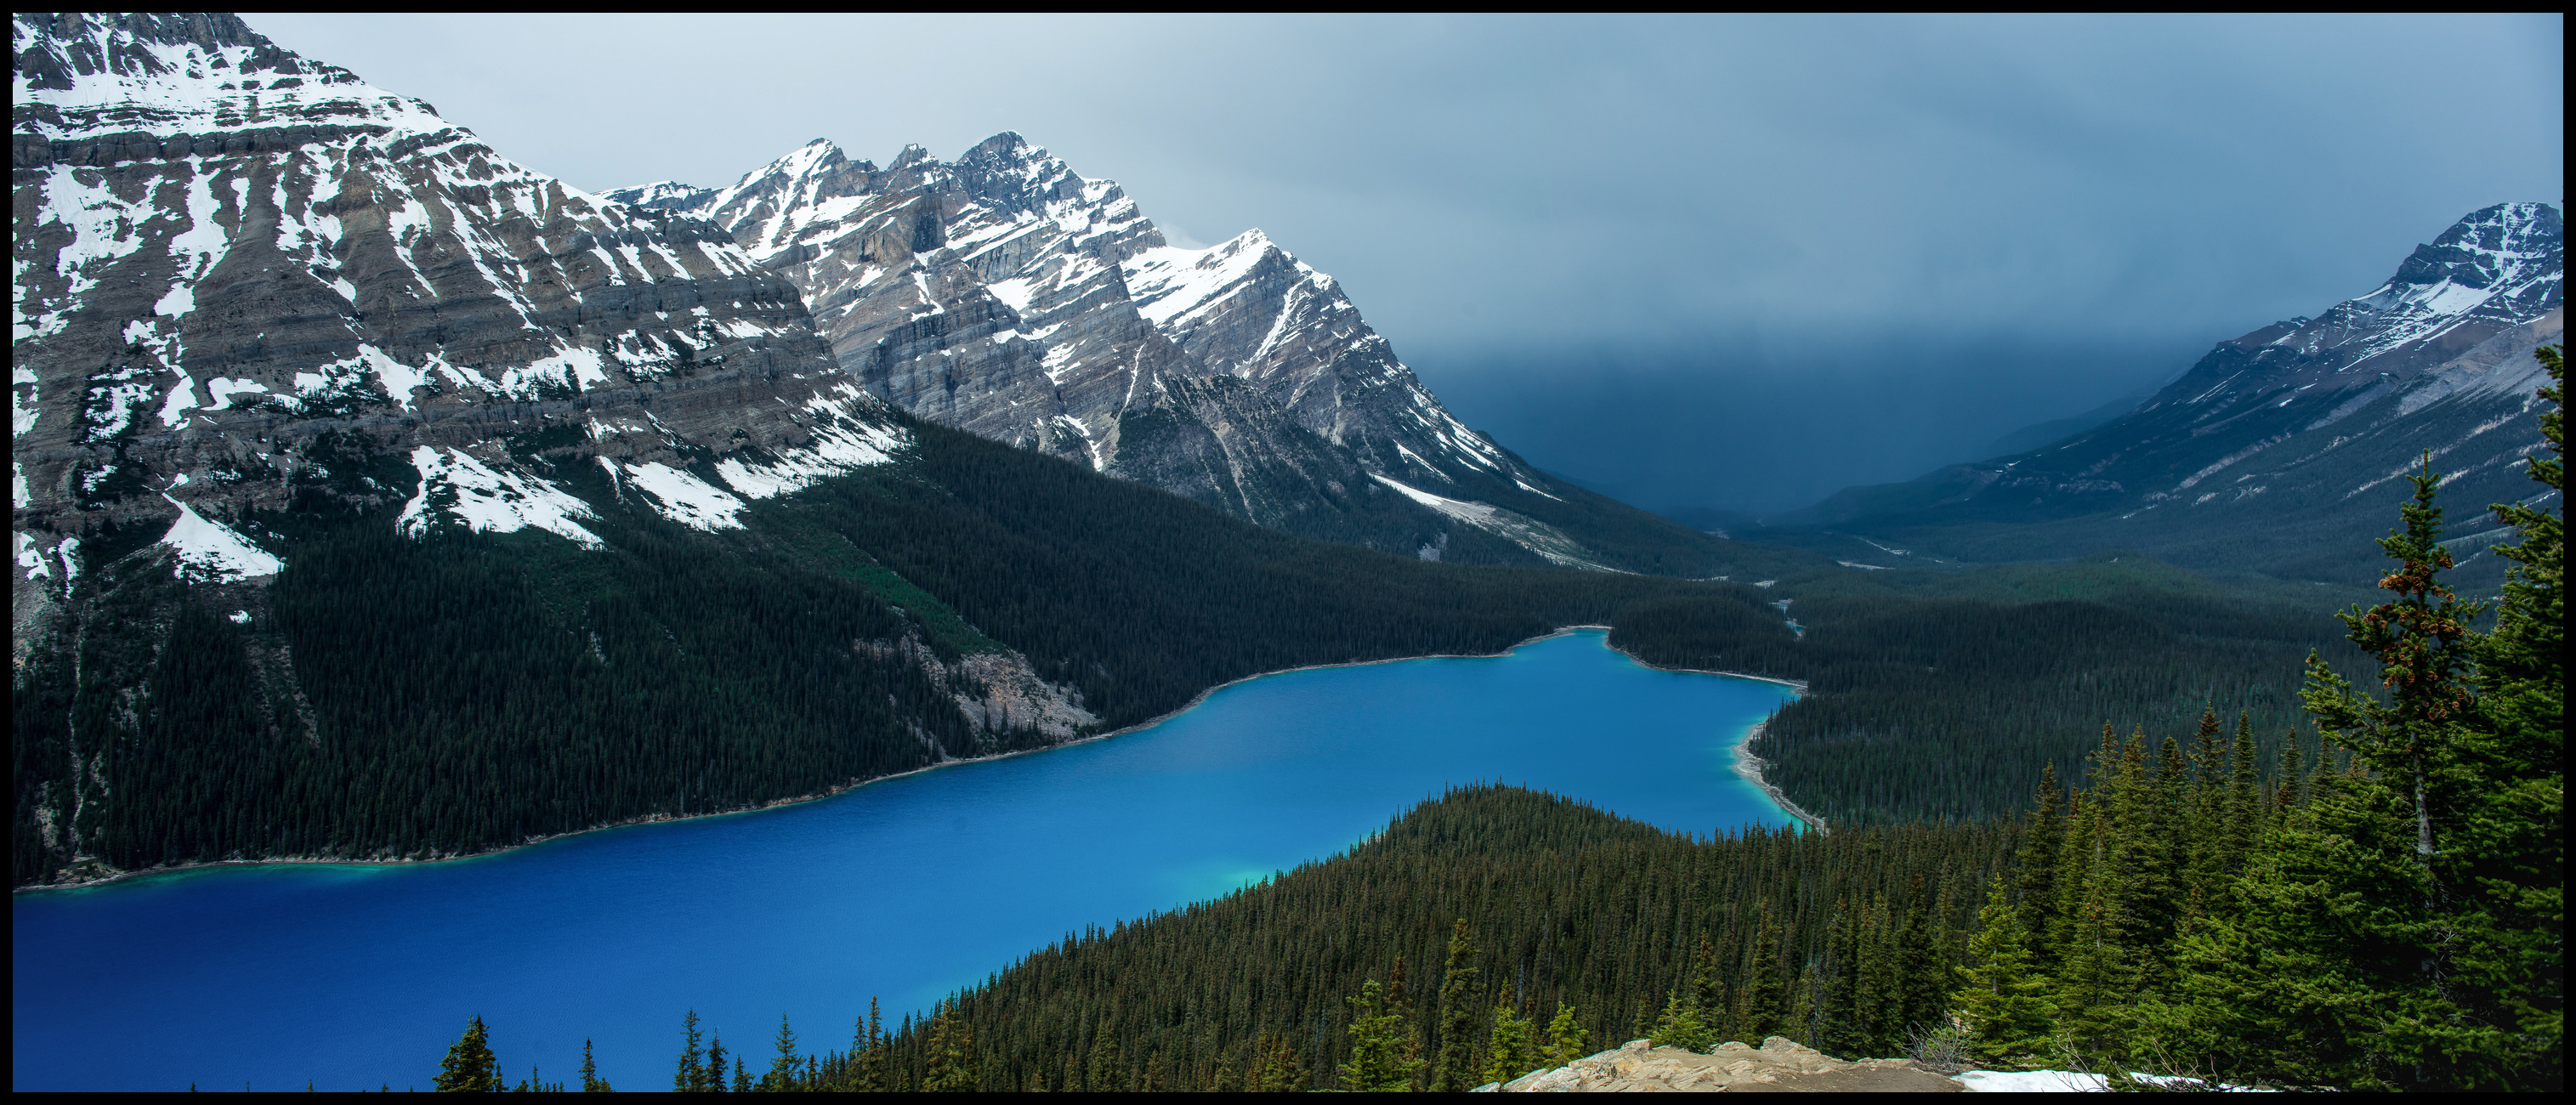 Peyto Lake colours after the storm Sony A7 / Canon FD Tilt Shift 35 2.8